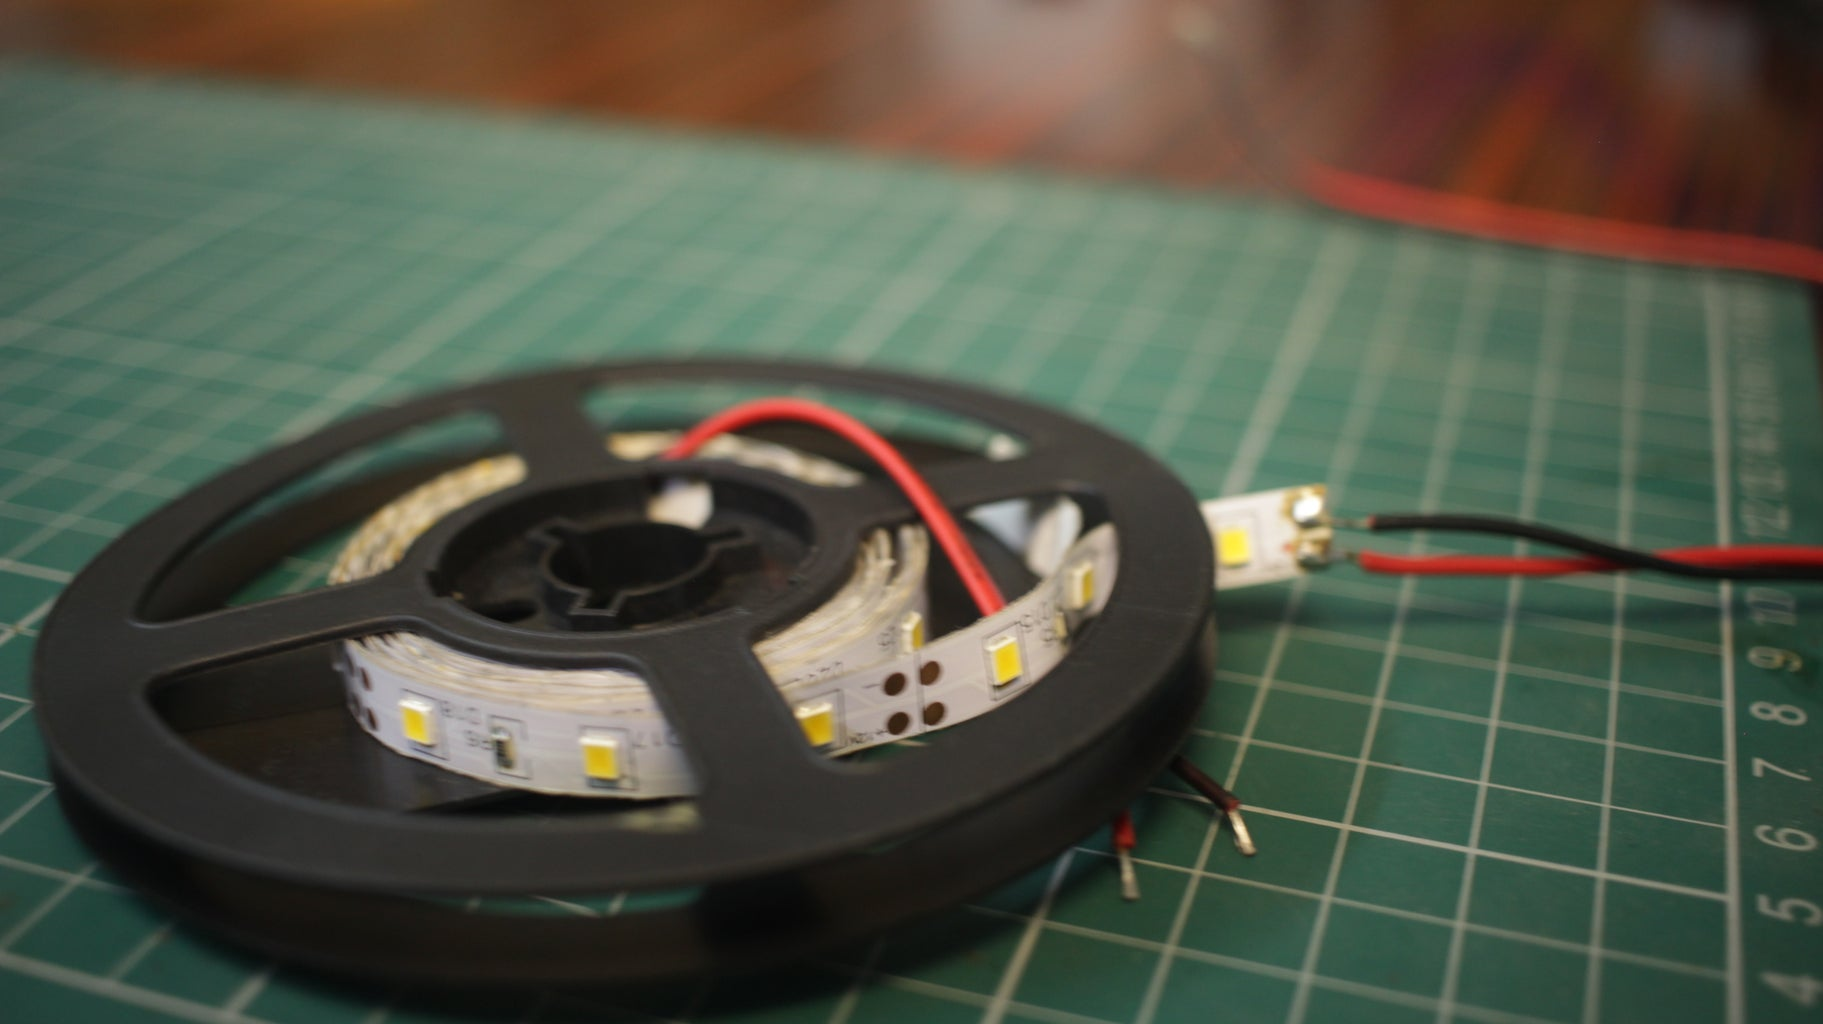 Mounting the LED